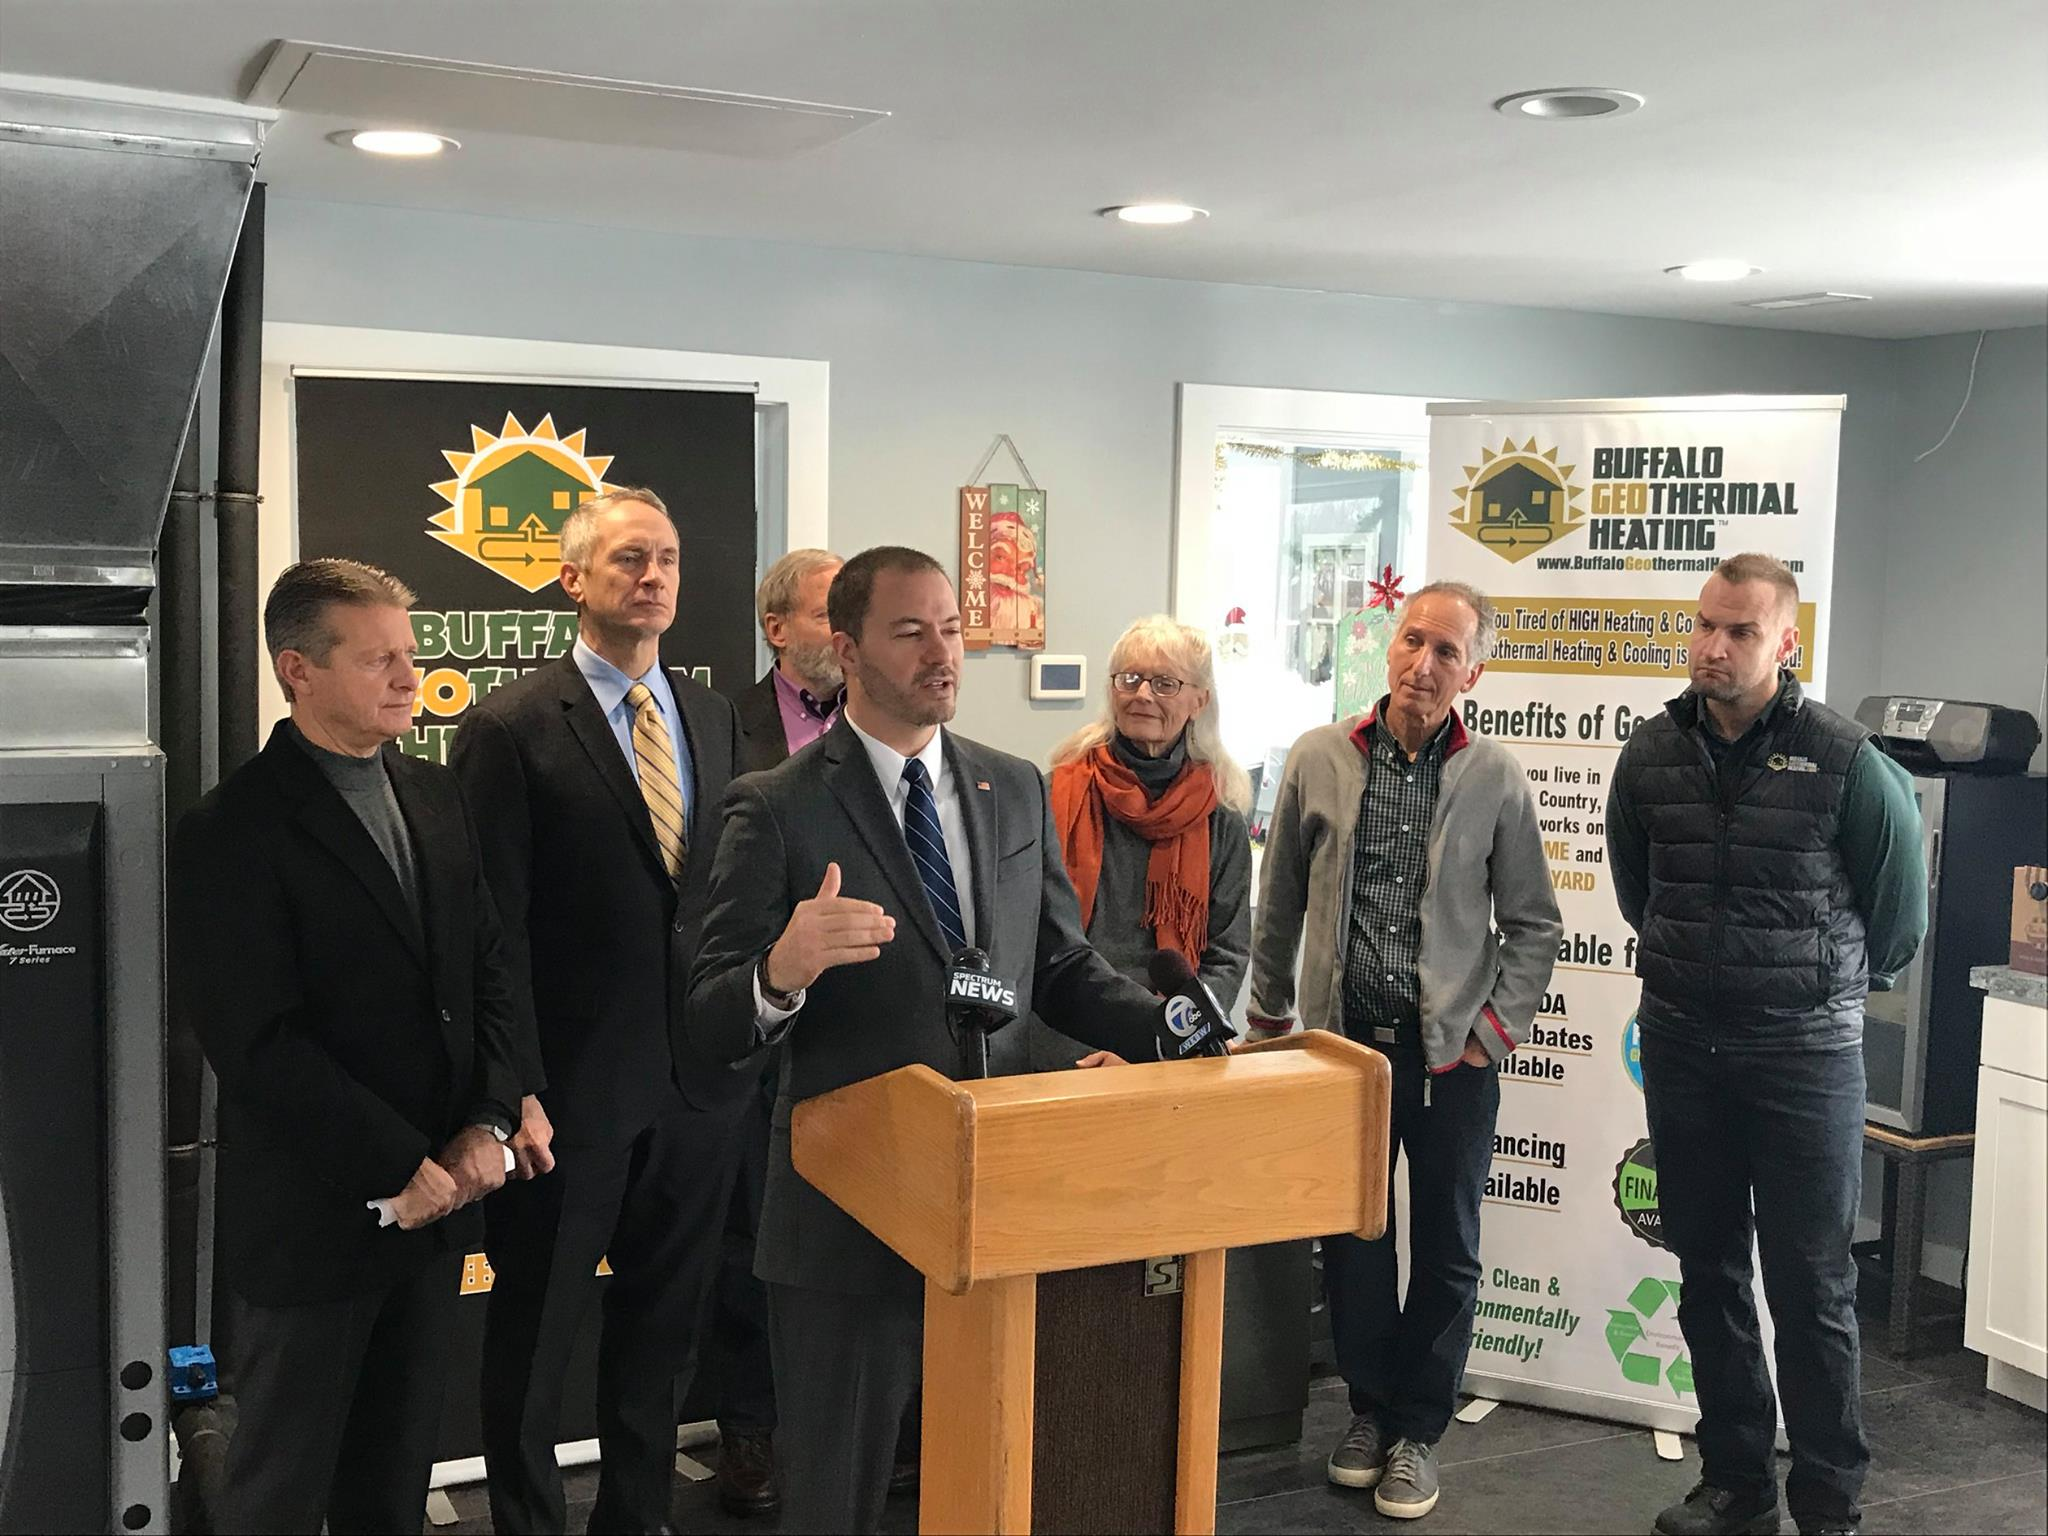 NYS Senator Patrick Gallivan, Senator Robert Ortt and Assemblyman Sean Ryan Gather at Local Business to Support Renewable Energy Image